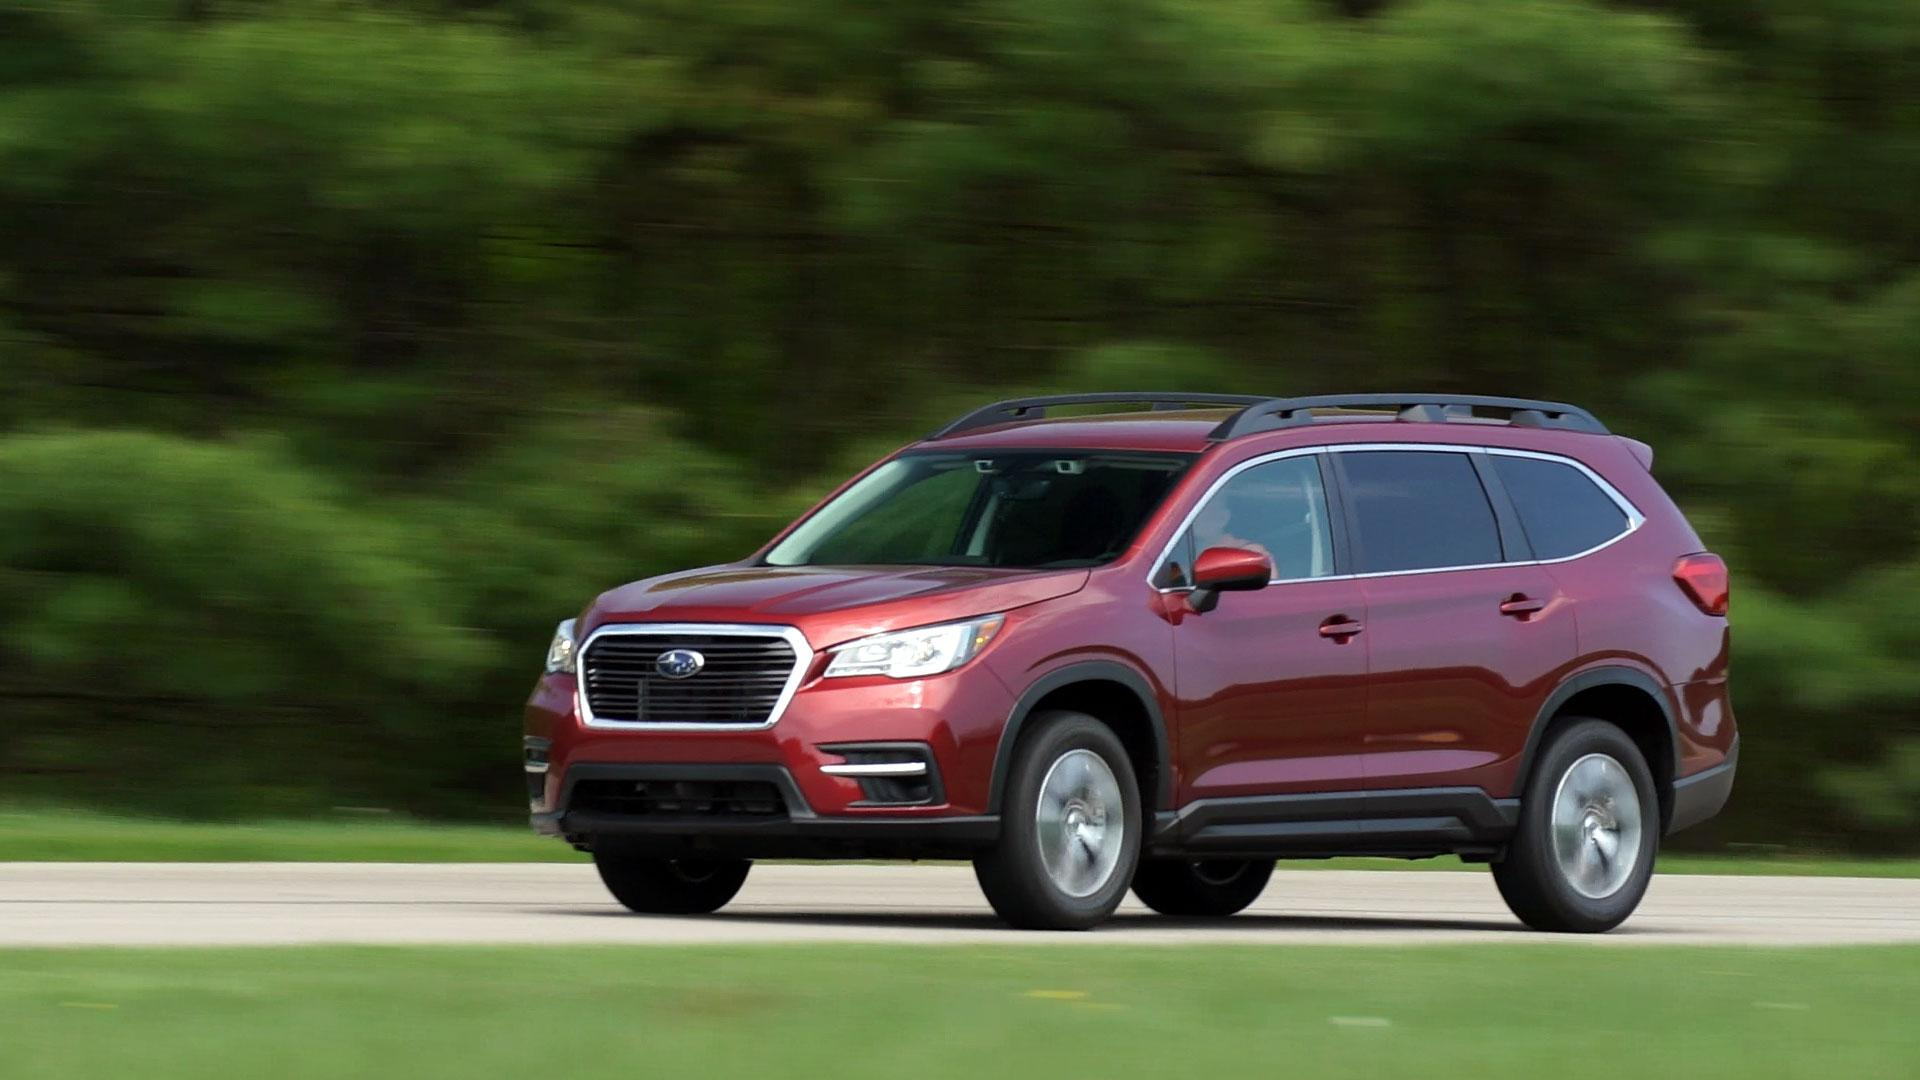 2012 Outback Fuse Box Lid Will Not Snap On Electrical Wiring Diagrams Subaru Reviews Ratings Prices Consumer Reports